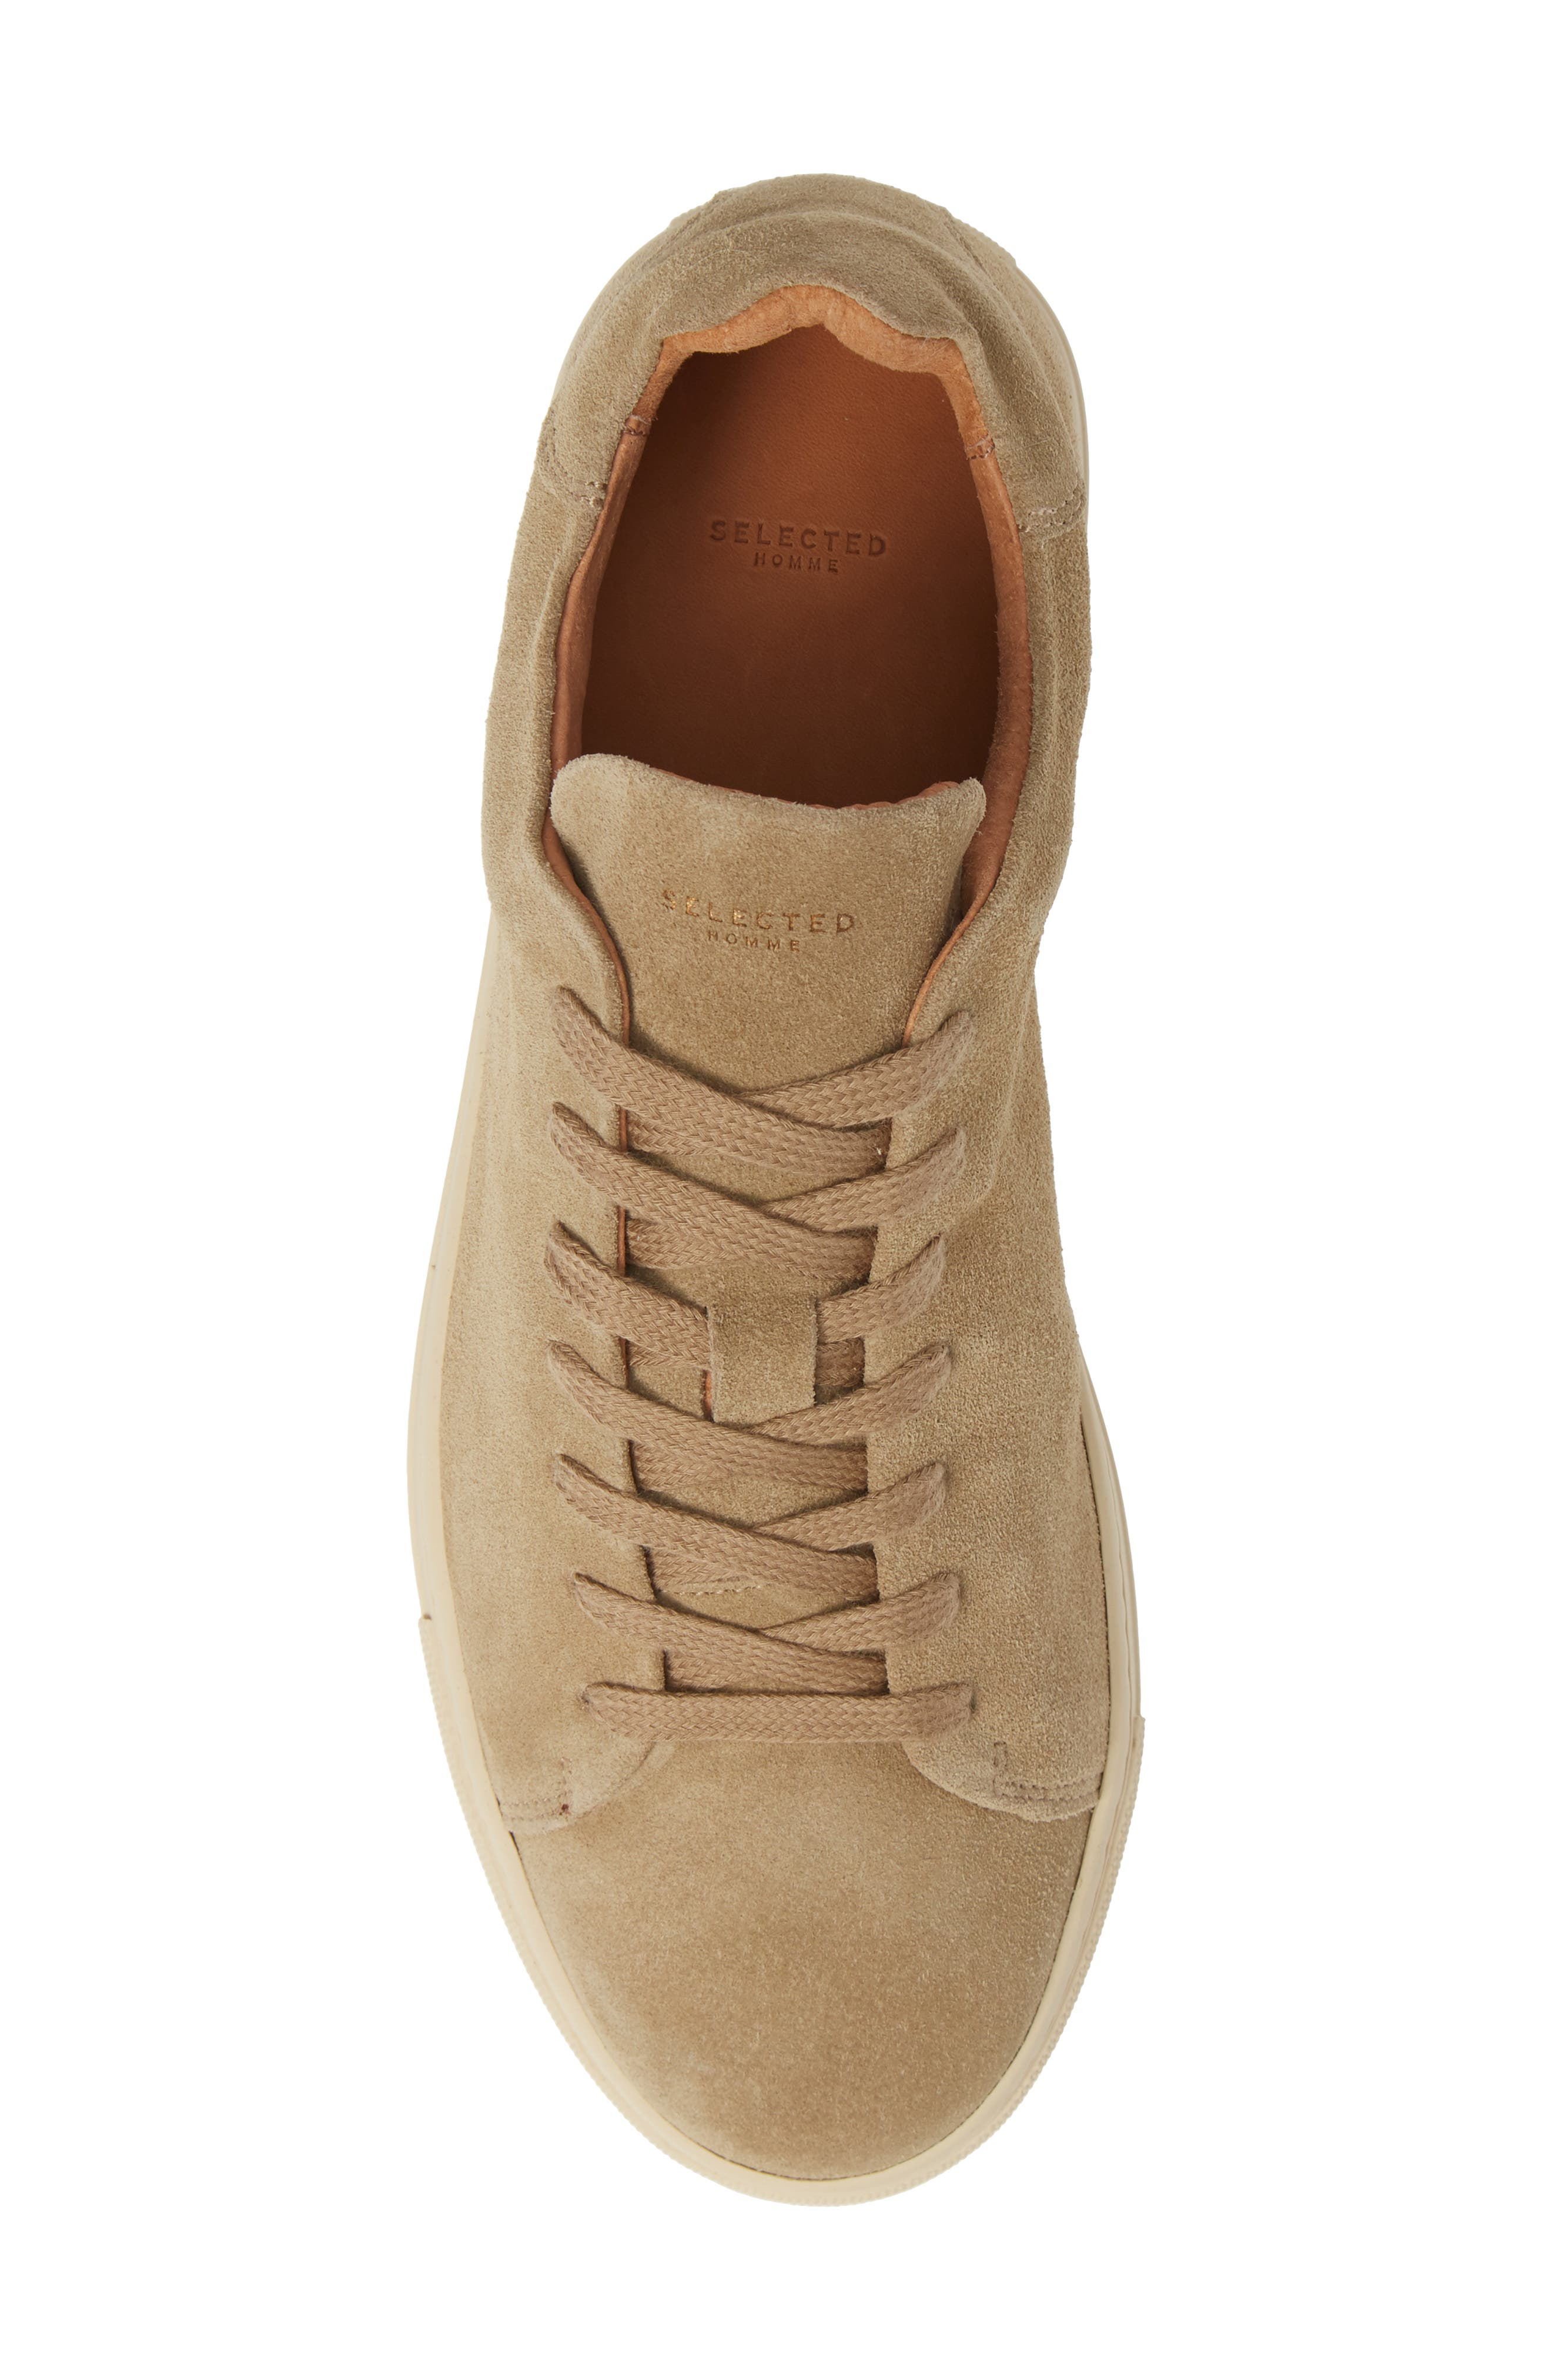 Selected Home David Low Top Sneaker,                             Alternate thumbnail 5, color,                             SAND SUEDE